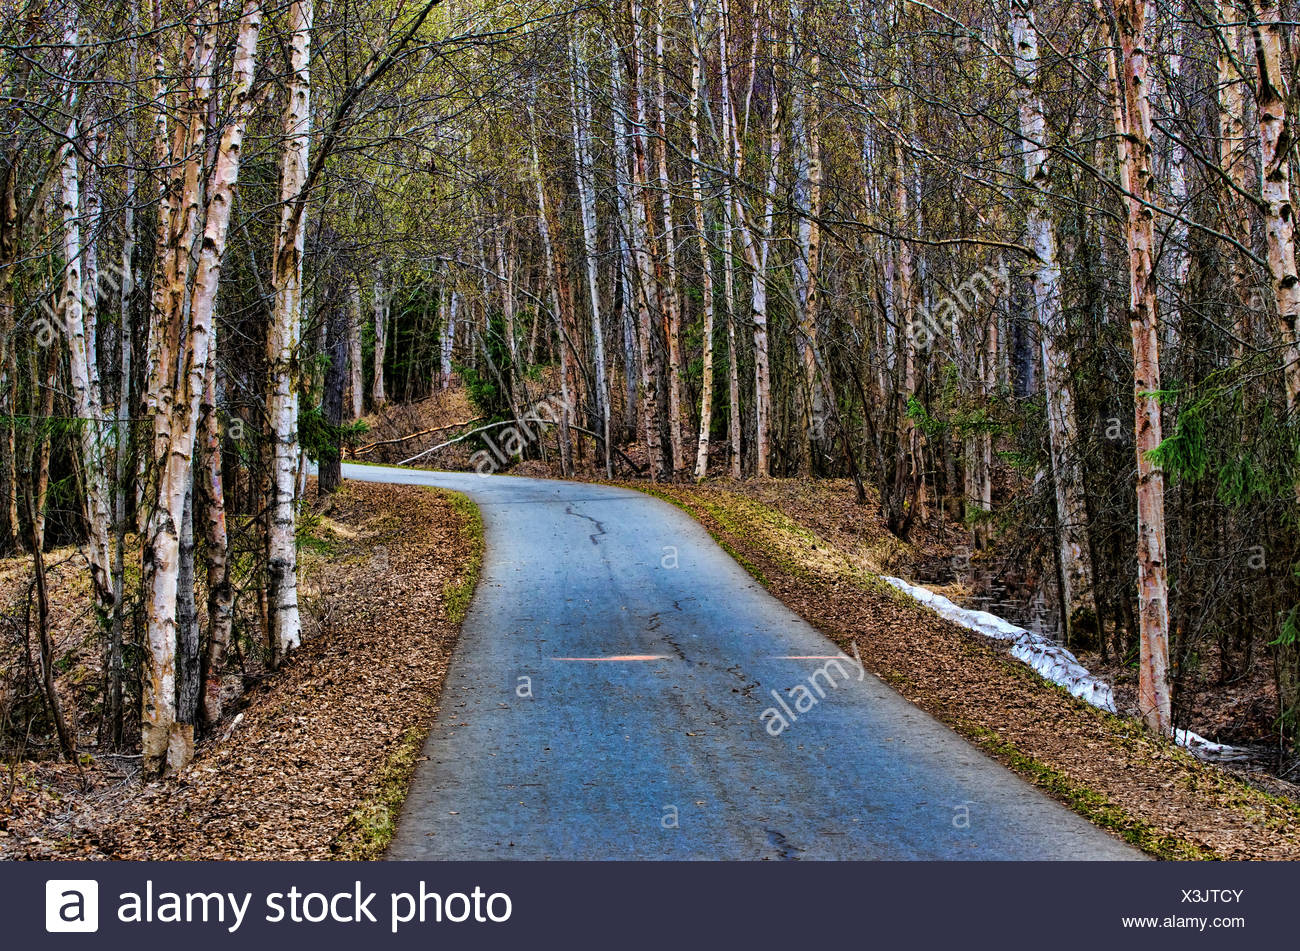 anchorage coastal trail, Alaska, USA, United States, America, road, forest, autumn - Stock Image